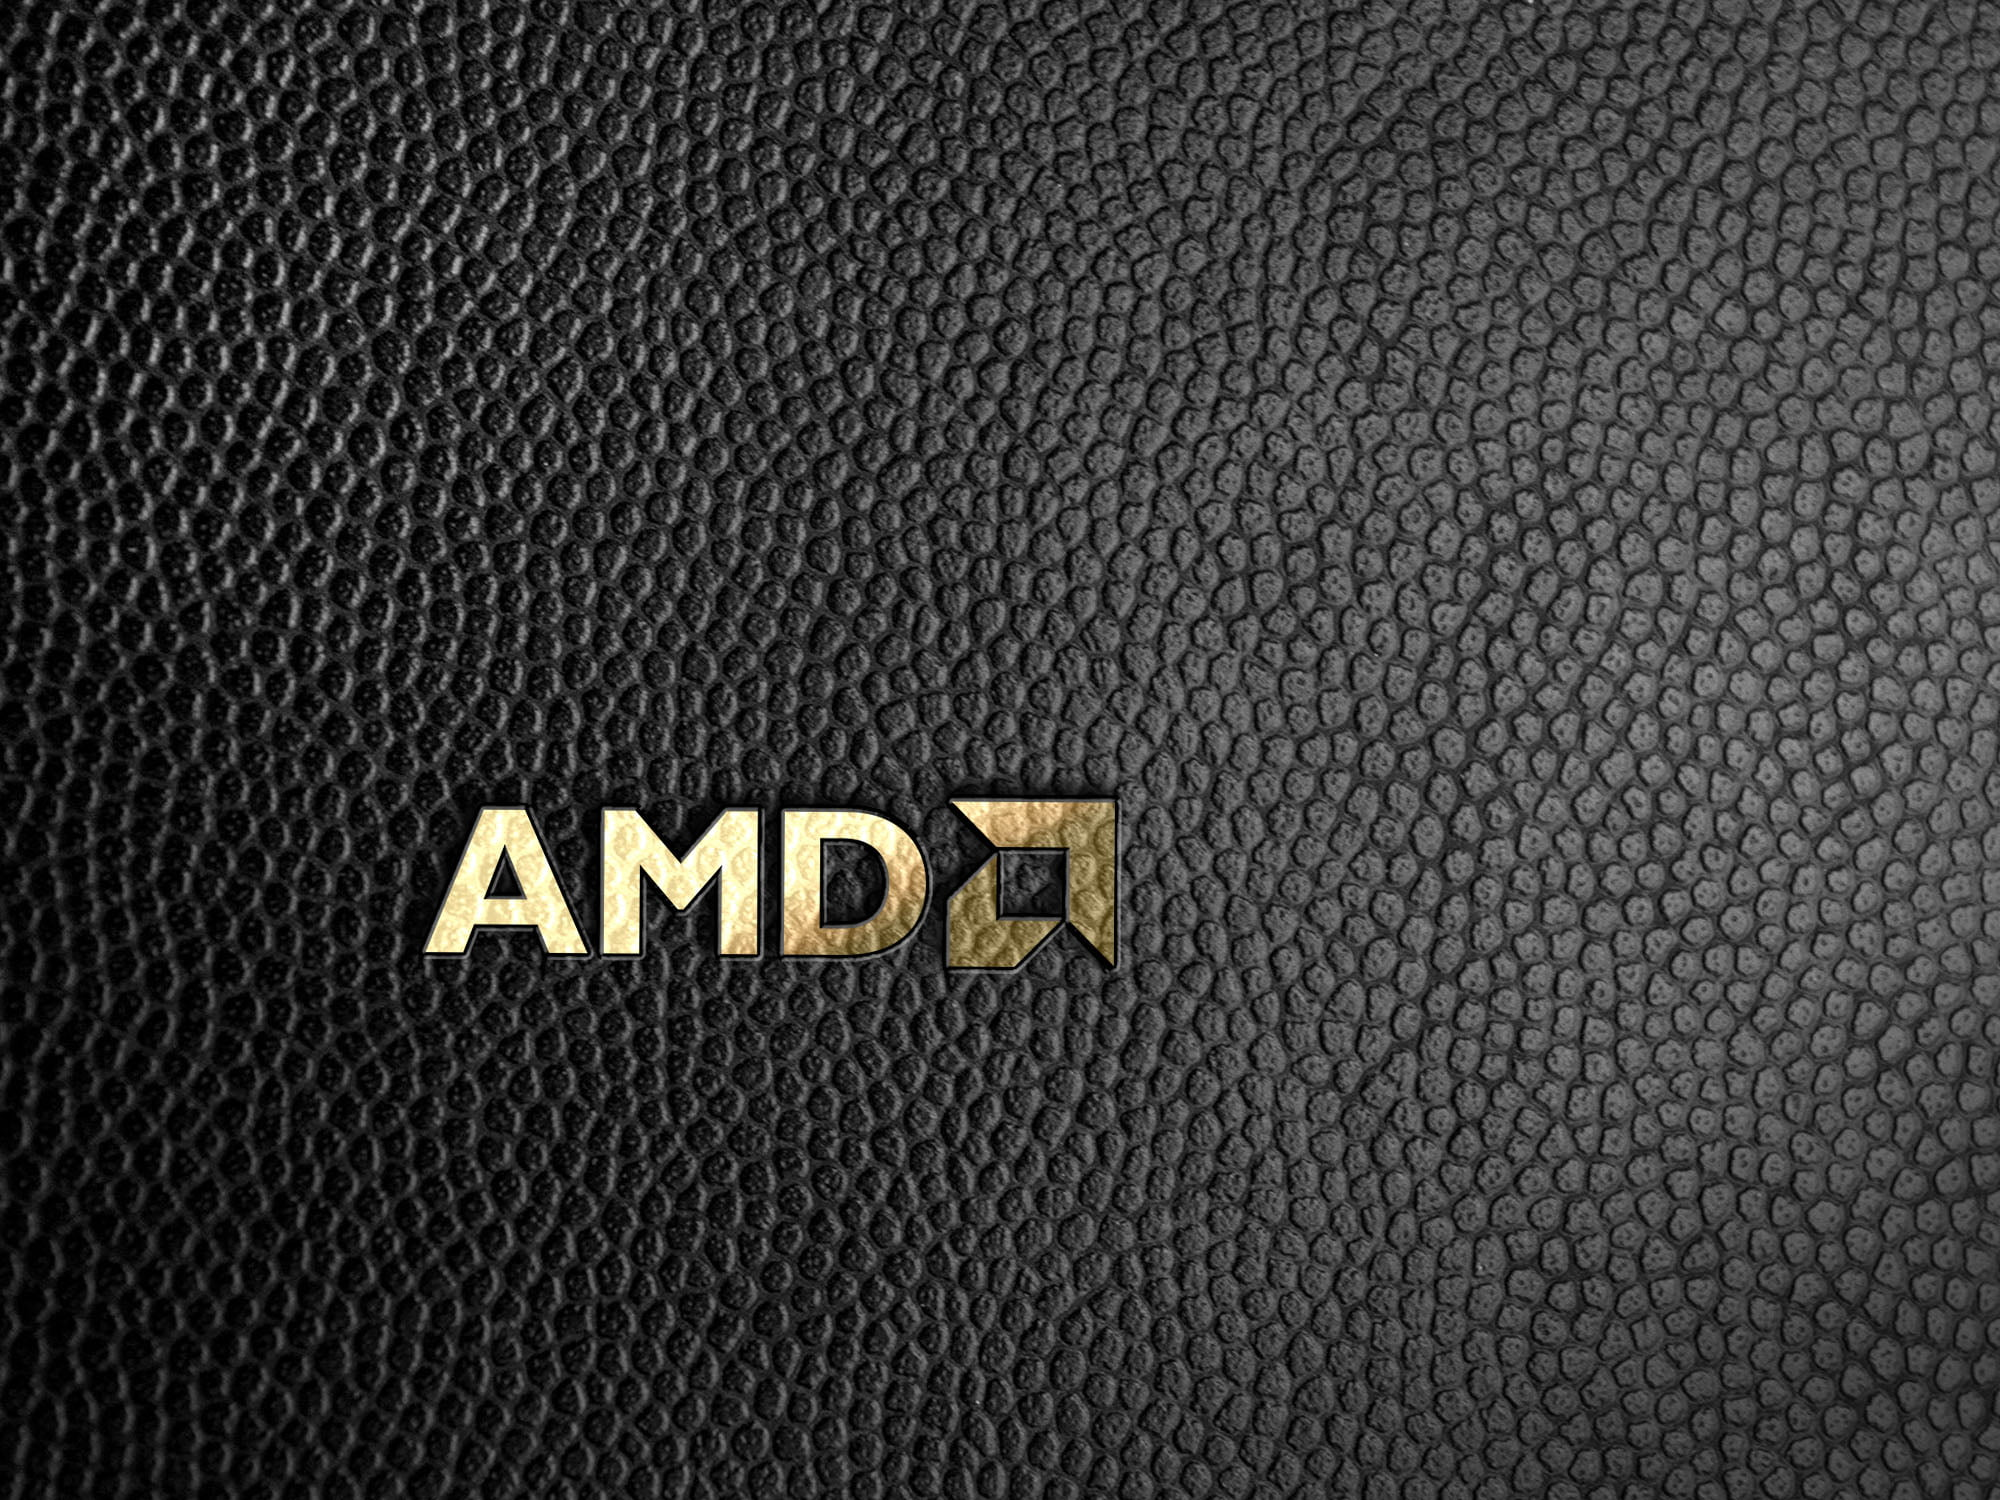 amd logo on black leather